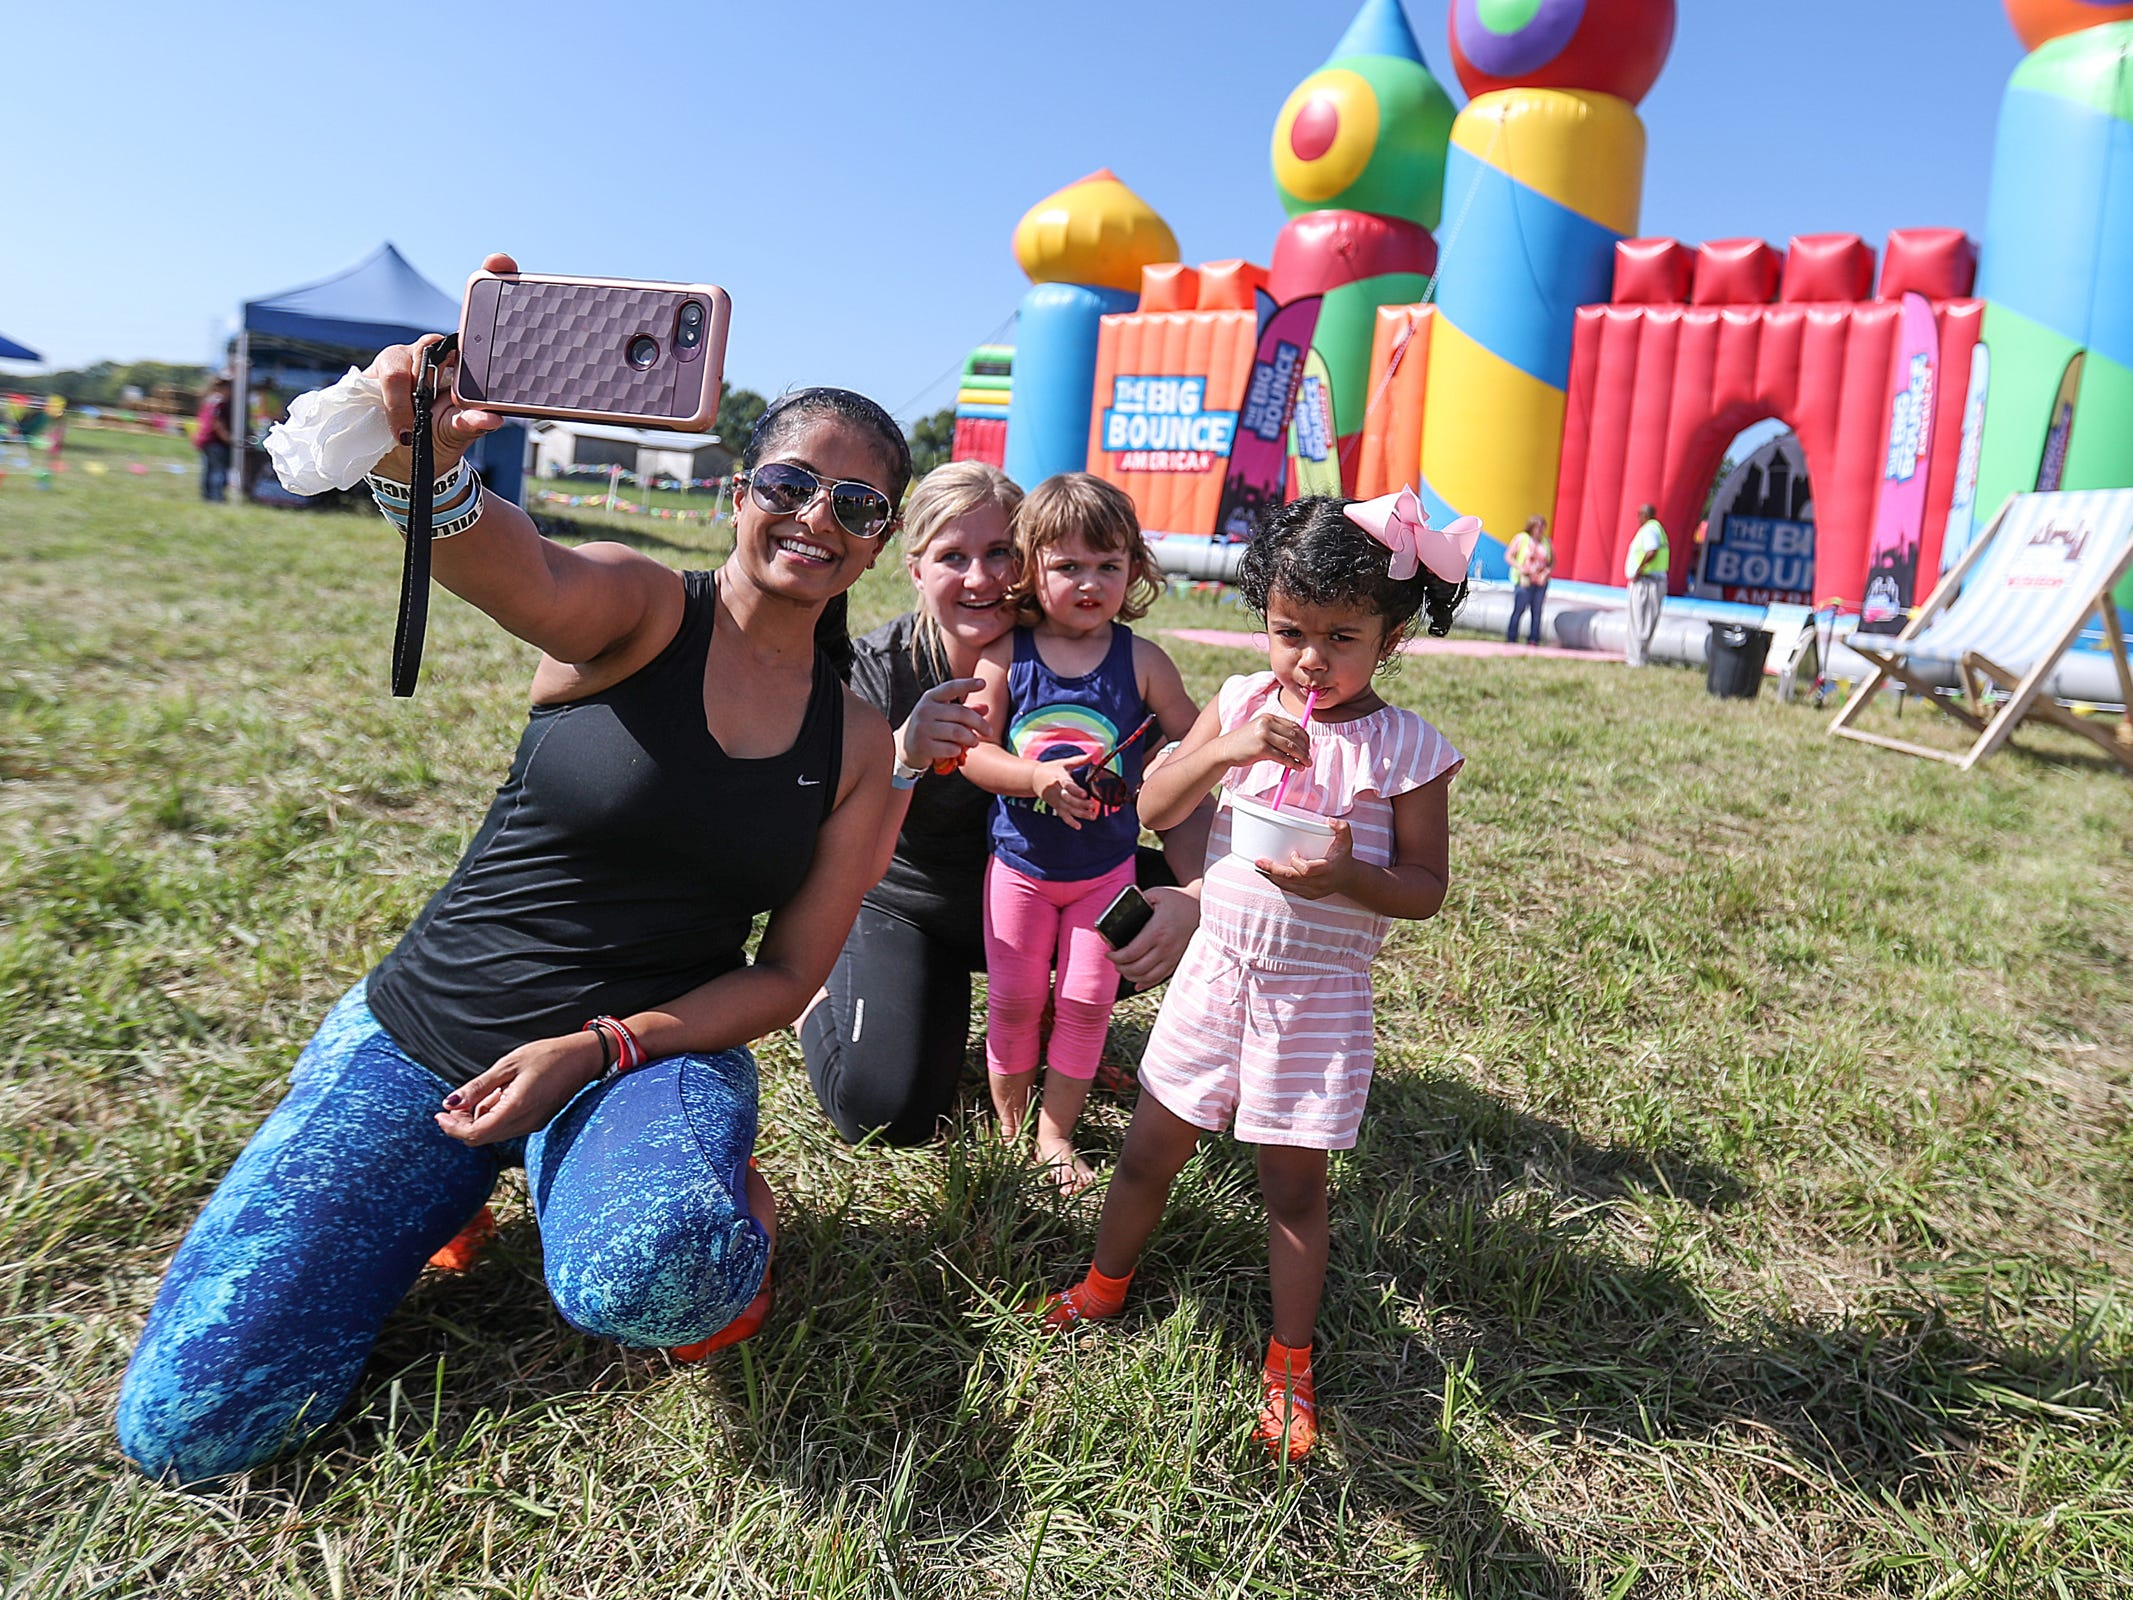 A group takes a selfie in front of the Big Bounce America inflatable attraction at Waterman's Family Farm in Indianapolis, Friday, Sept. 14, 2018. The world's largest bounce house covers 10,000 square feet and will be in Indy though September 16.